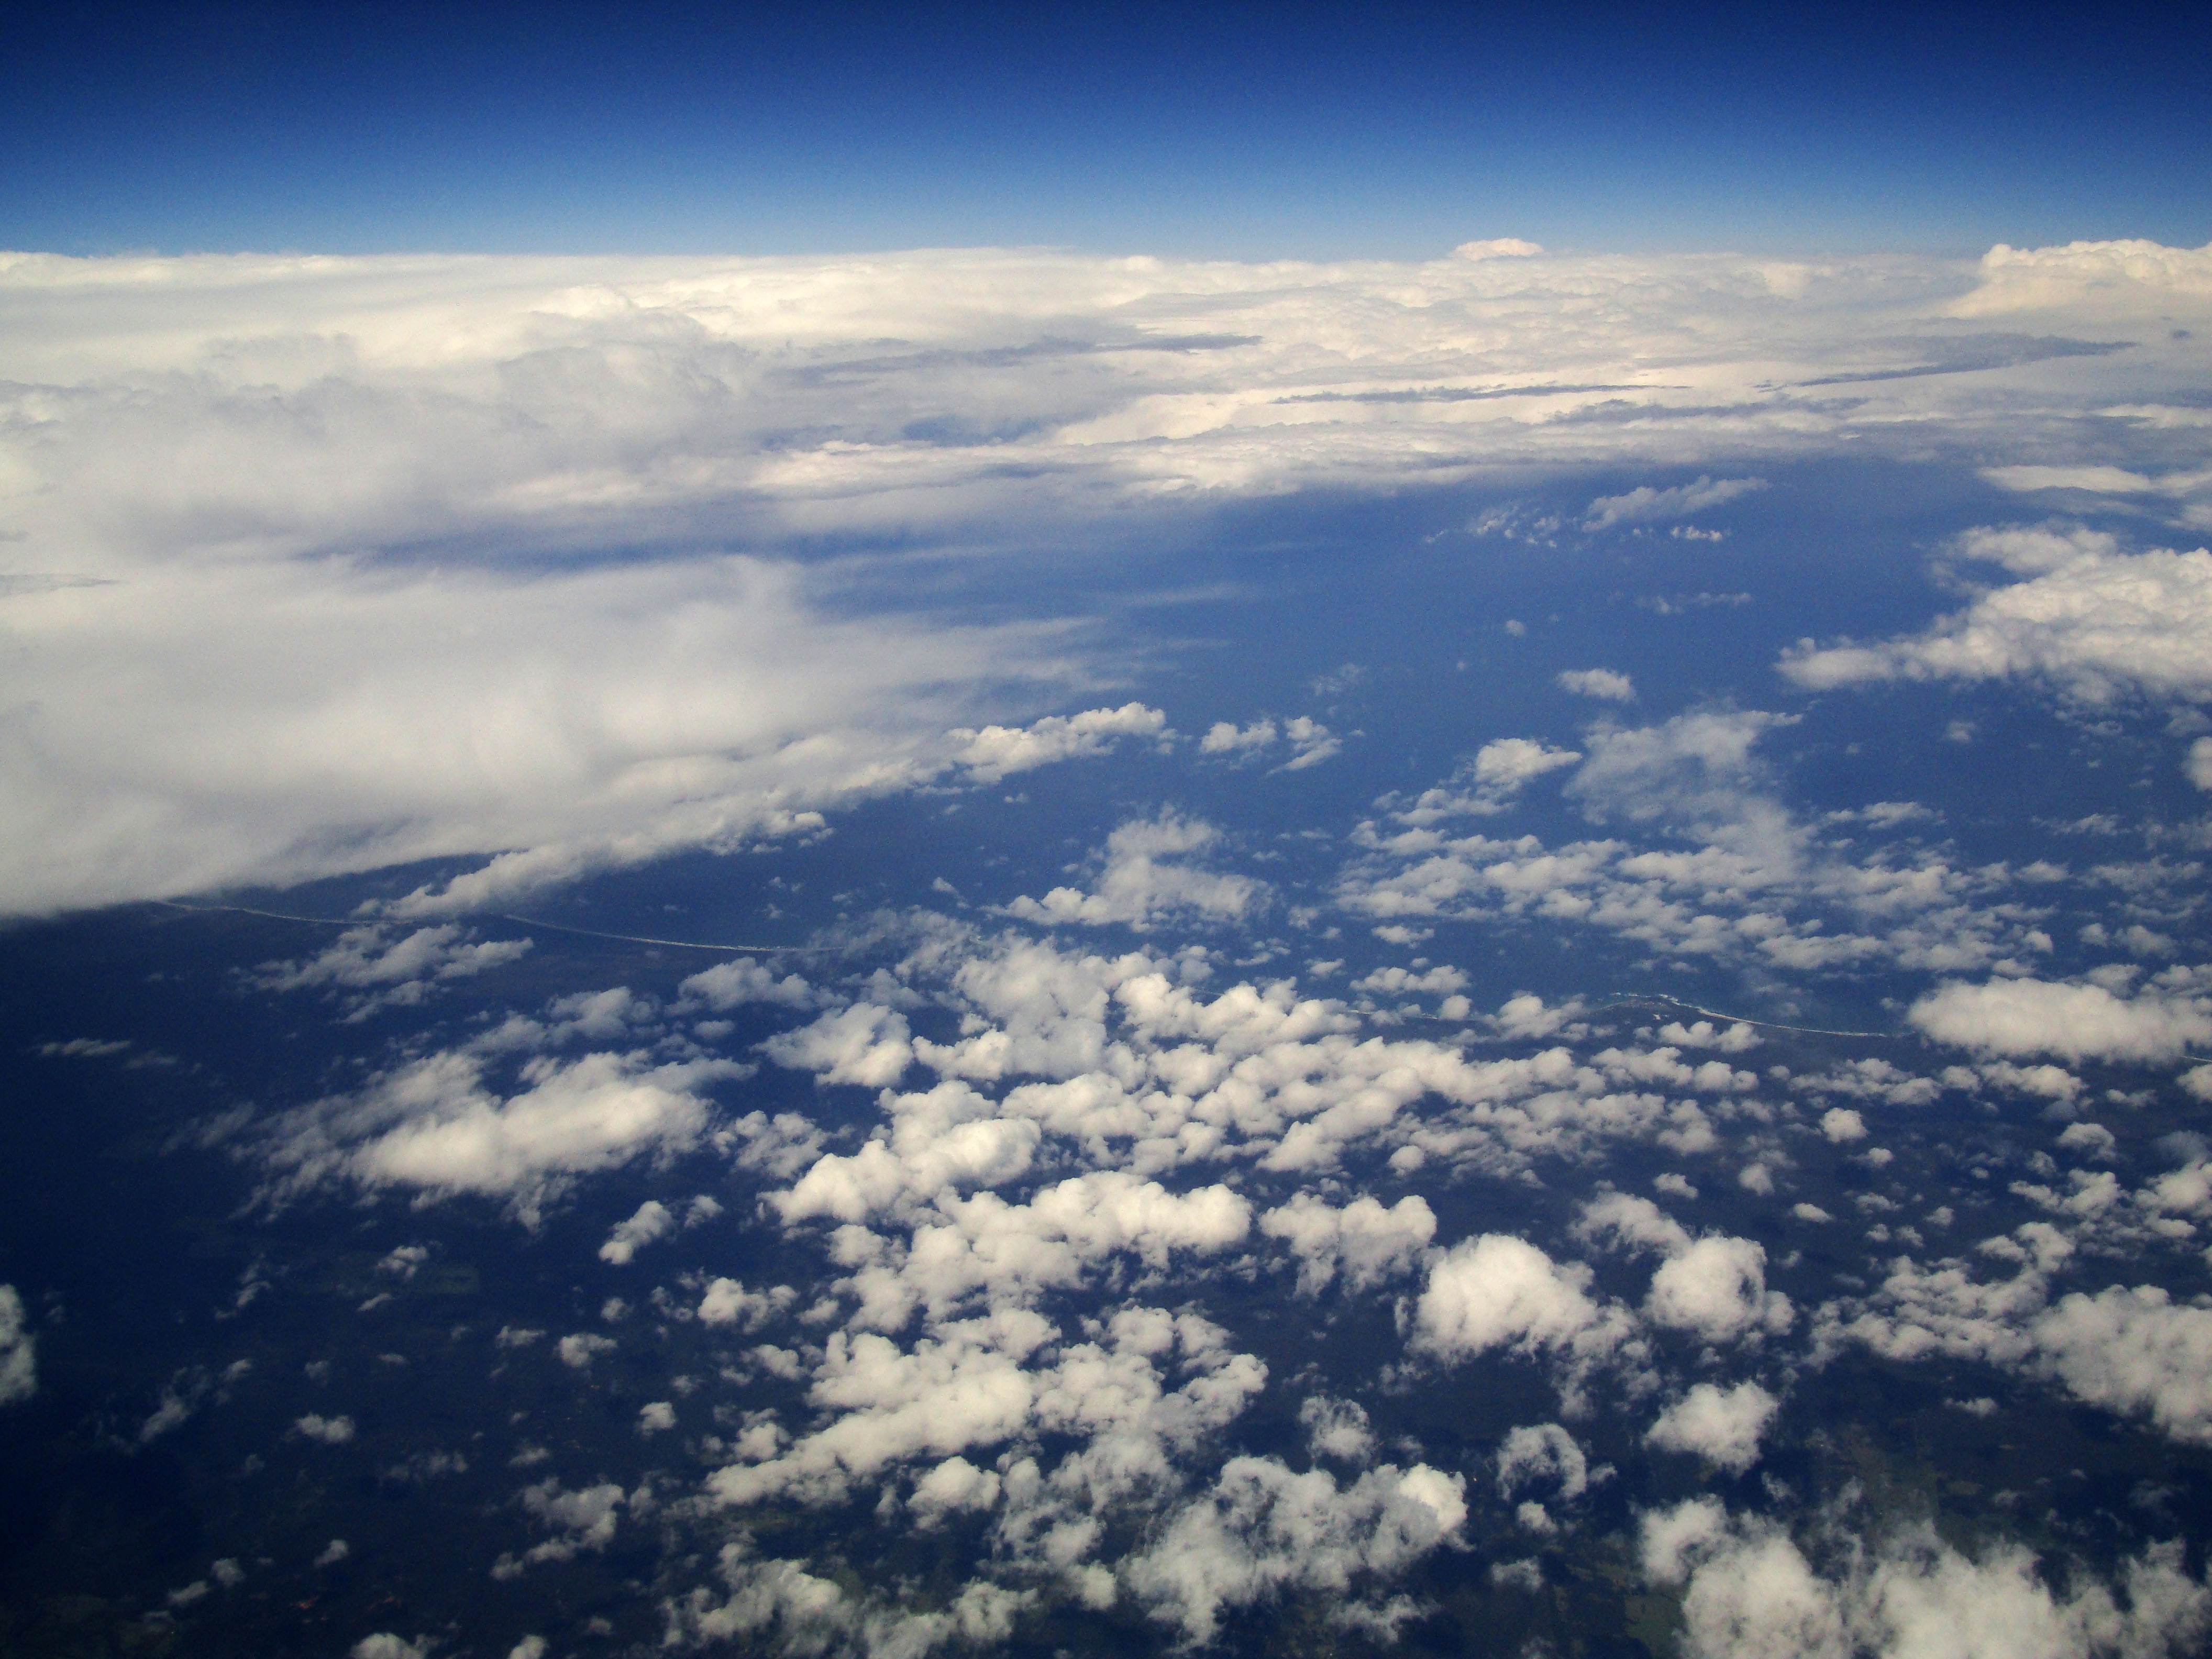 Textures Clouds Formations Sky Storms Weather Phenomena Aerial Views 26